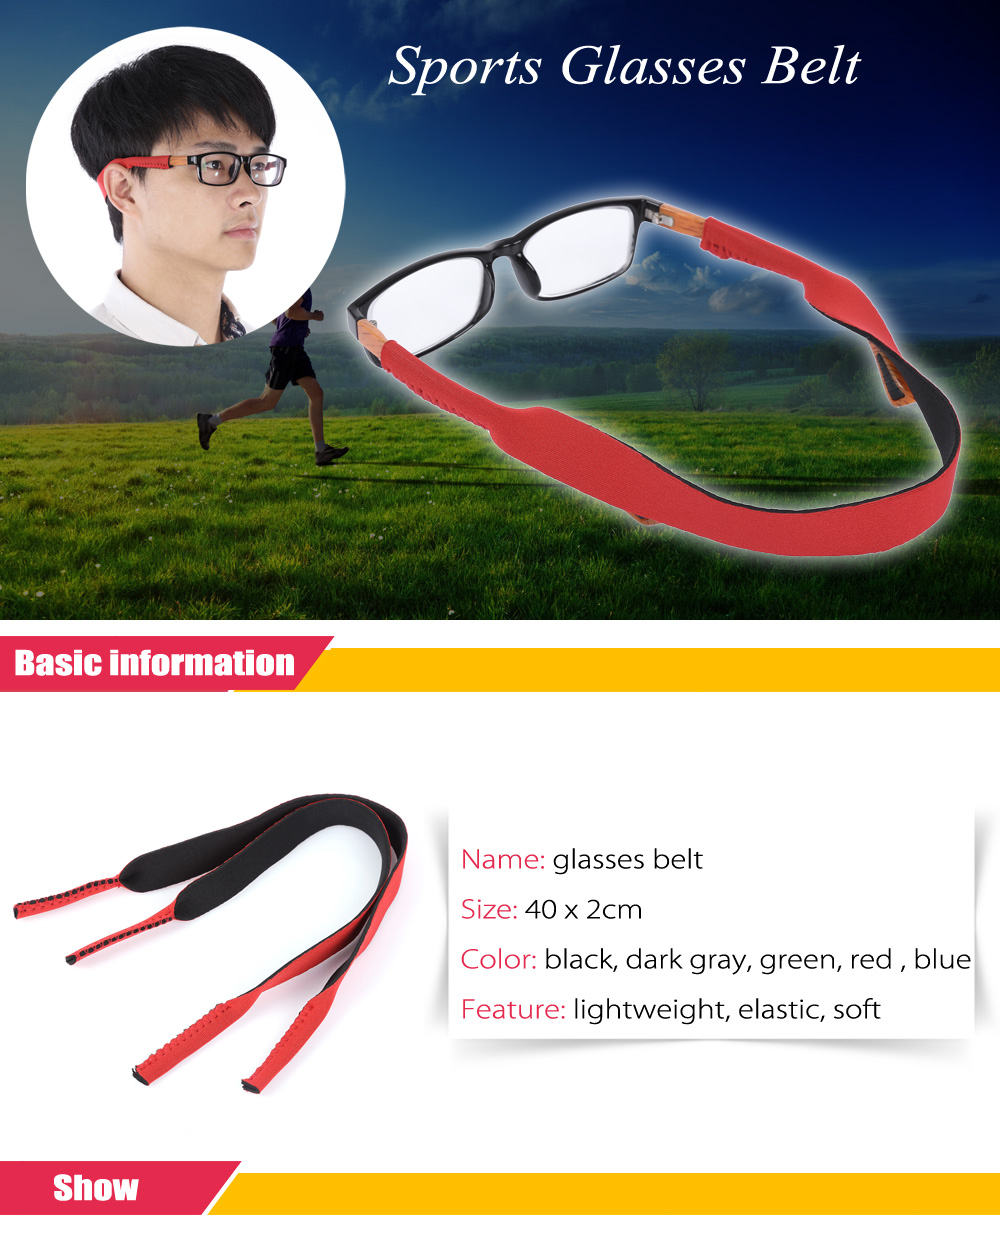 2pcs Chloroprene Rubber Stretchy Sports Glasses Belt Band